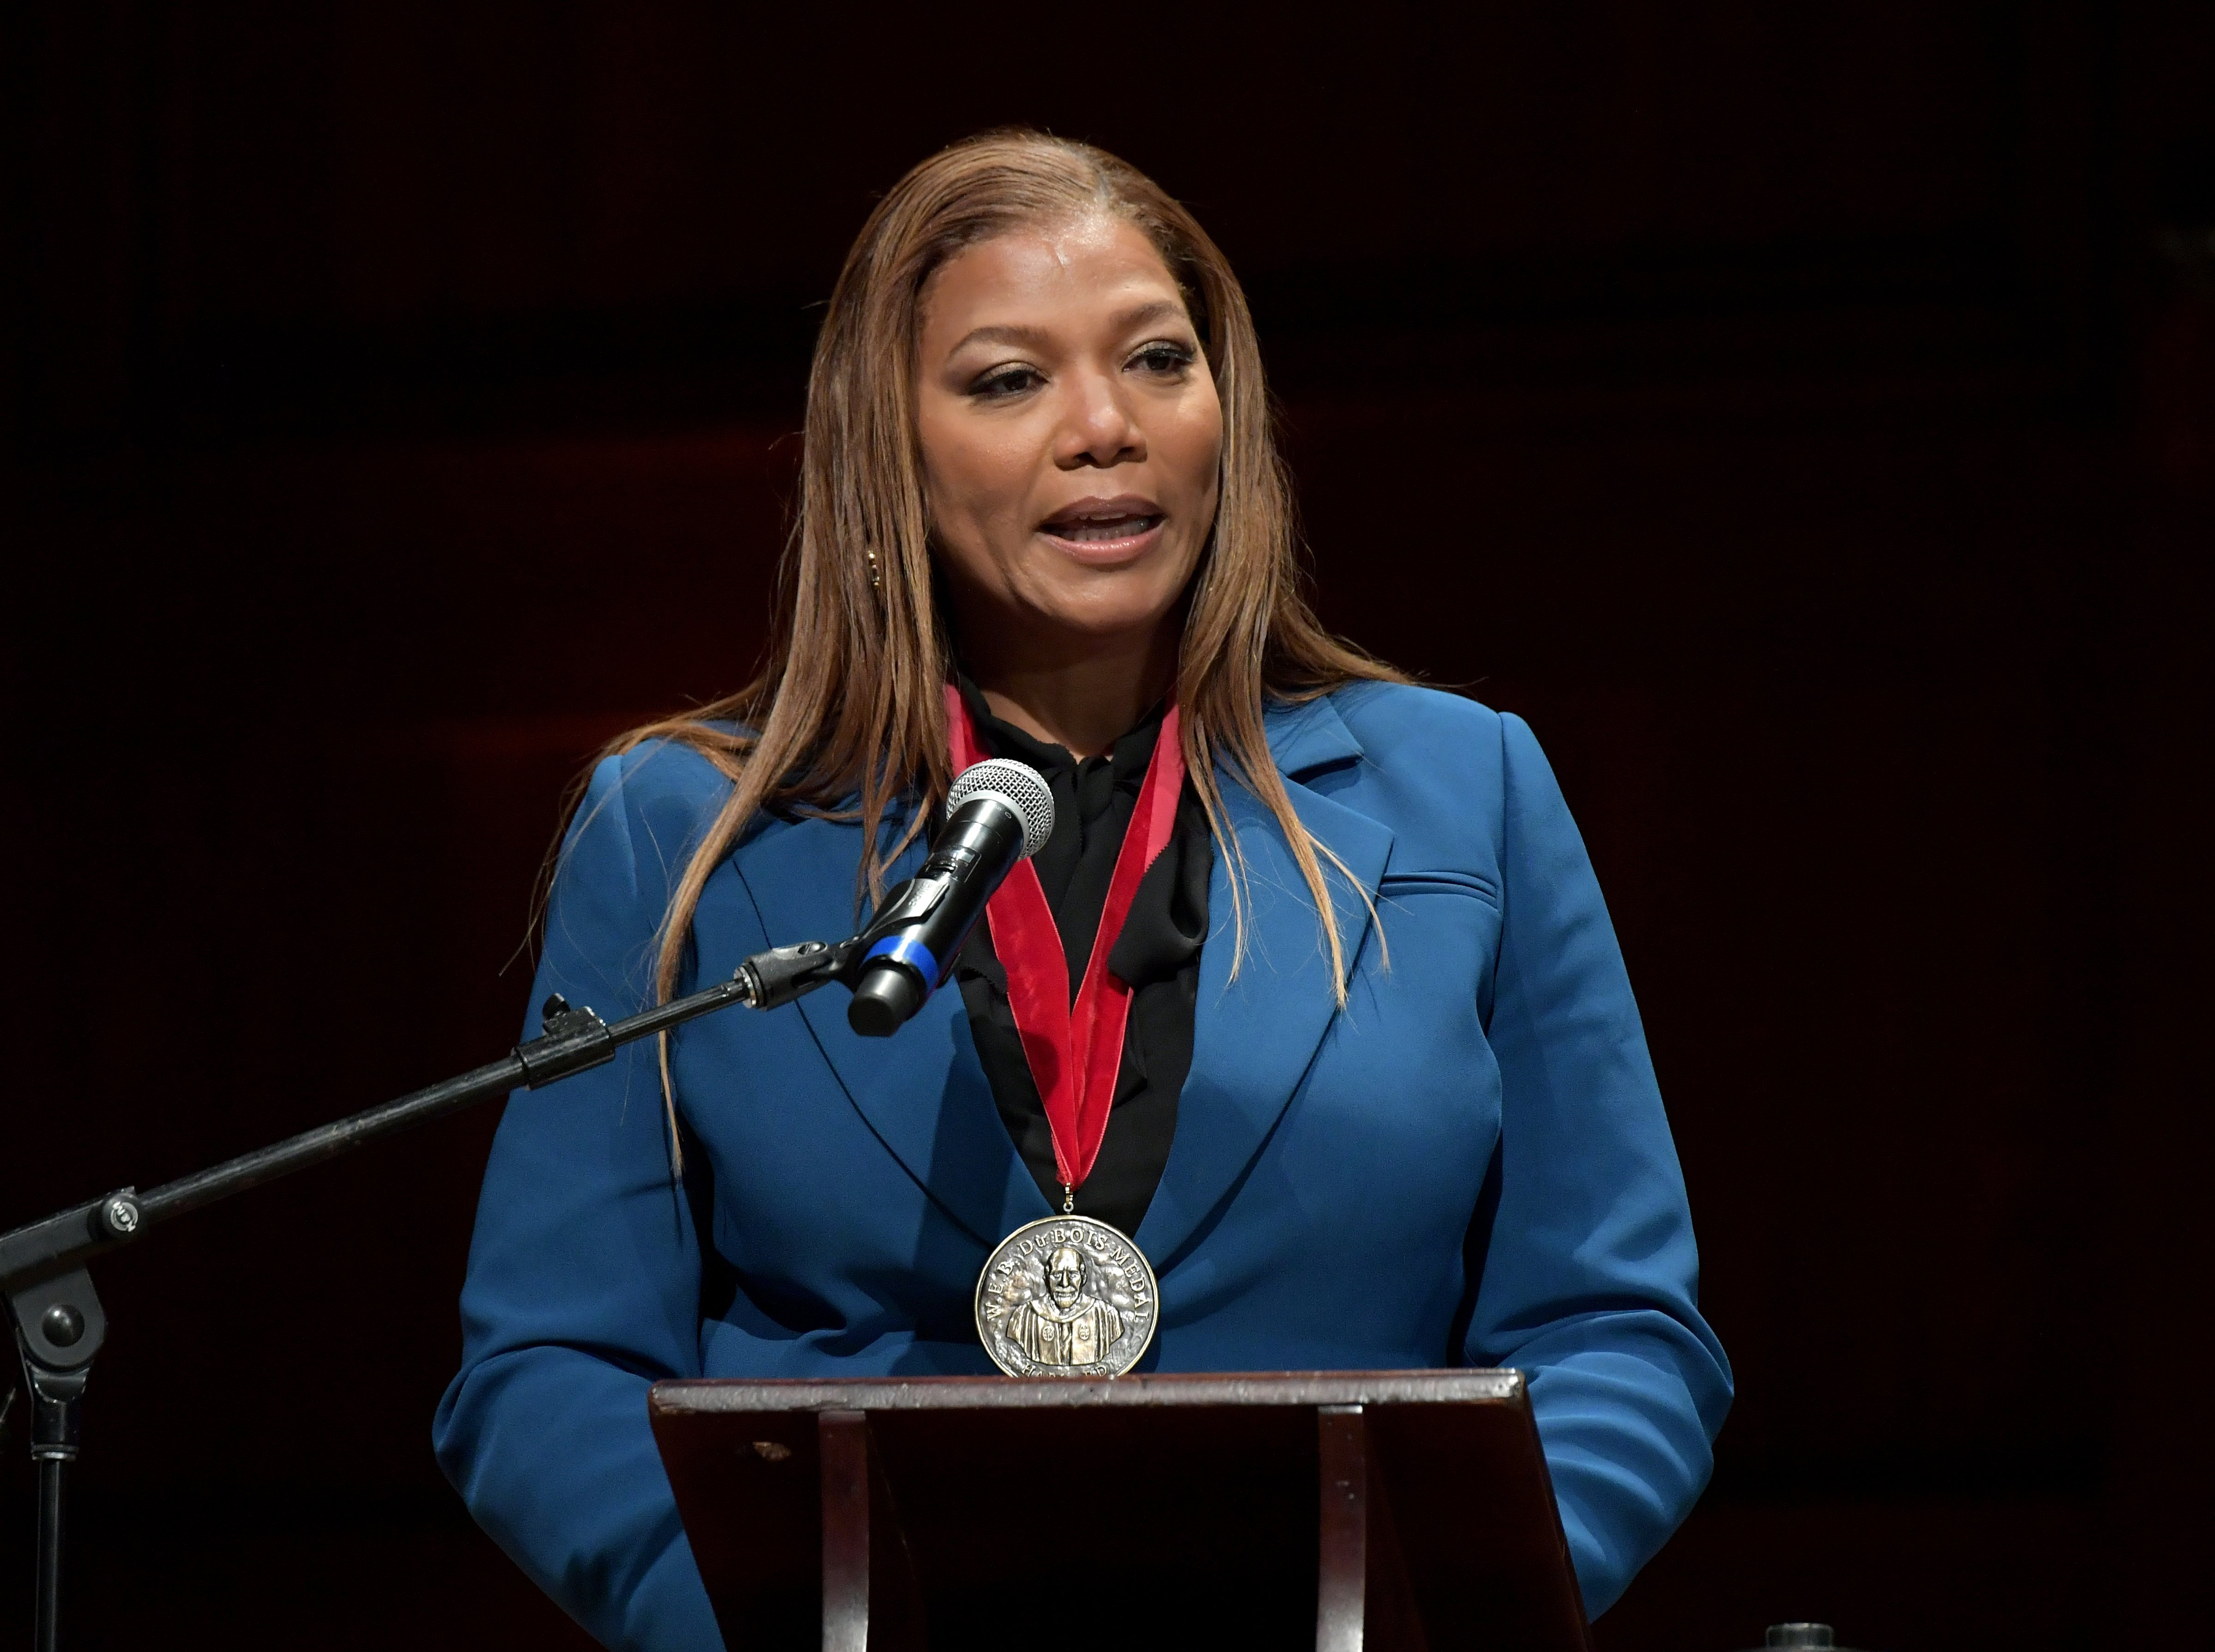 Queen Latifah accepting her W. E. B. Du Bois Medal at Harvard University on October 22, 2019. | Photo: Getty Images